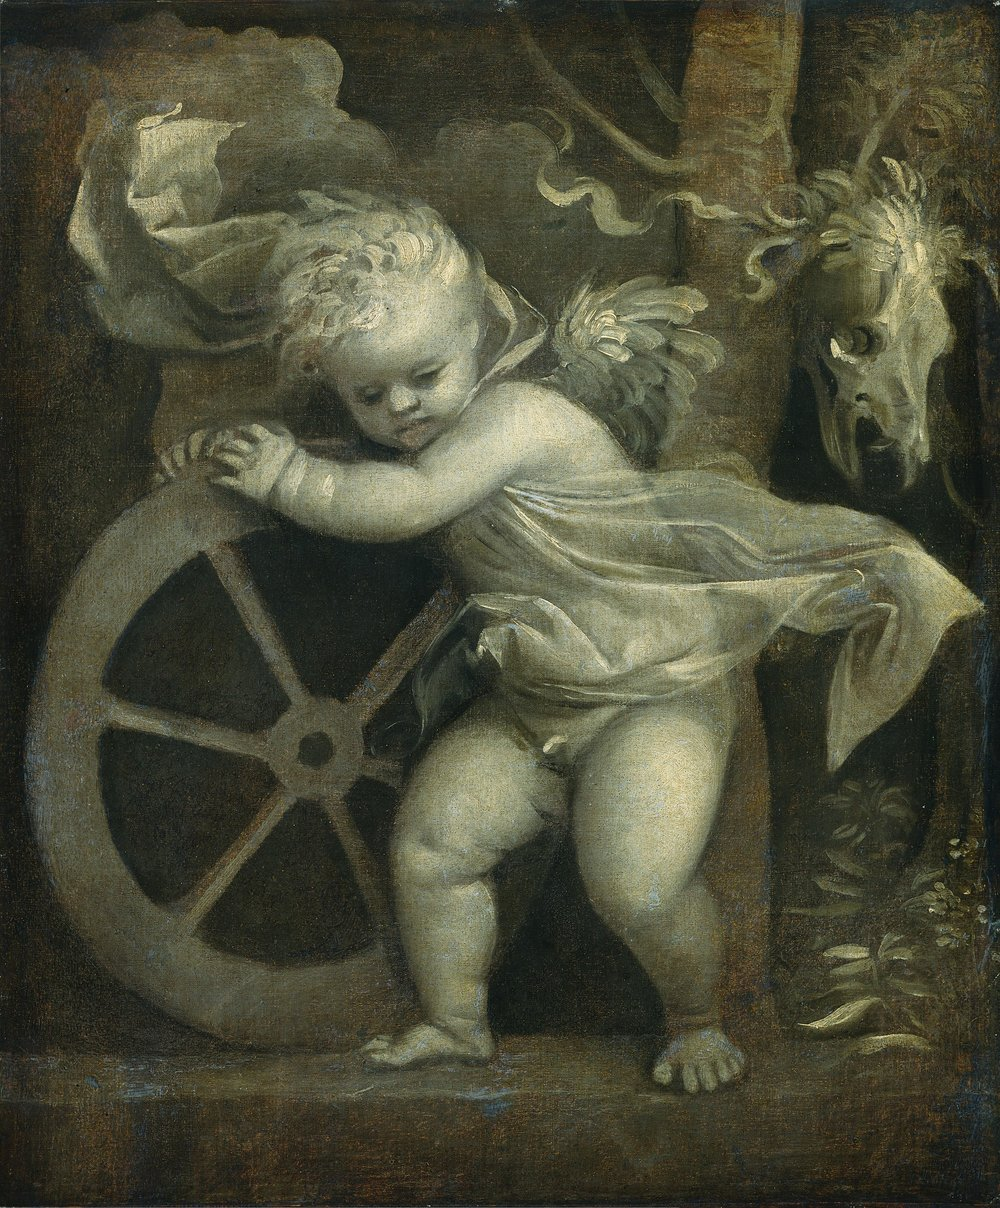 Titian (Tiziano Vecellio) This painting is usually called Cupid with Wheel of Fortune. A festooned animal skull (bucranium) is depicted behind the winged Cupid, making the image an allegory of Love, Fortune, and Death.